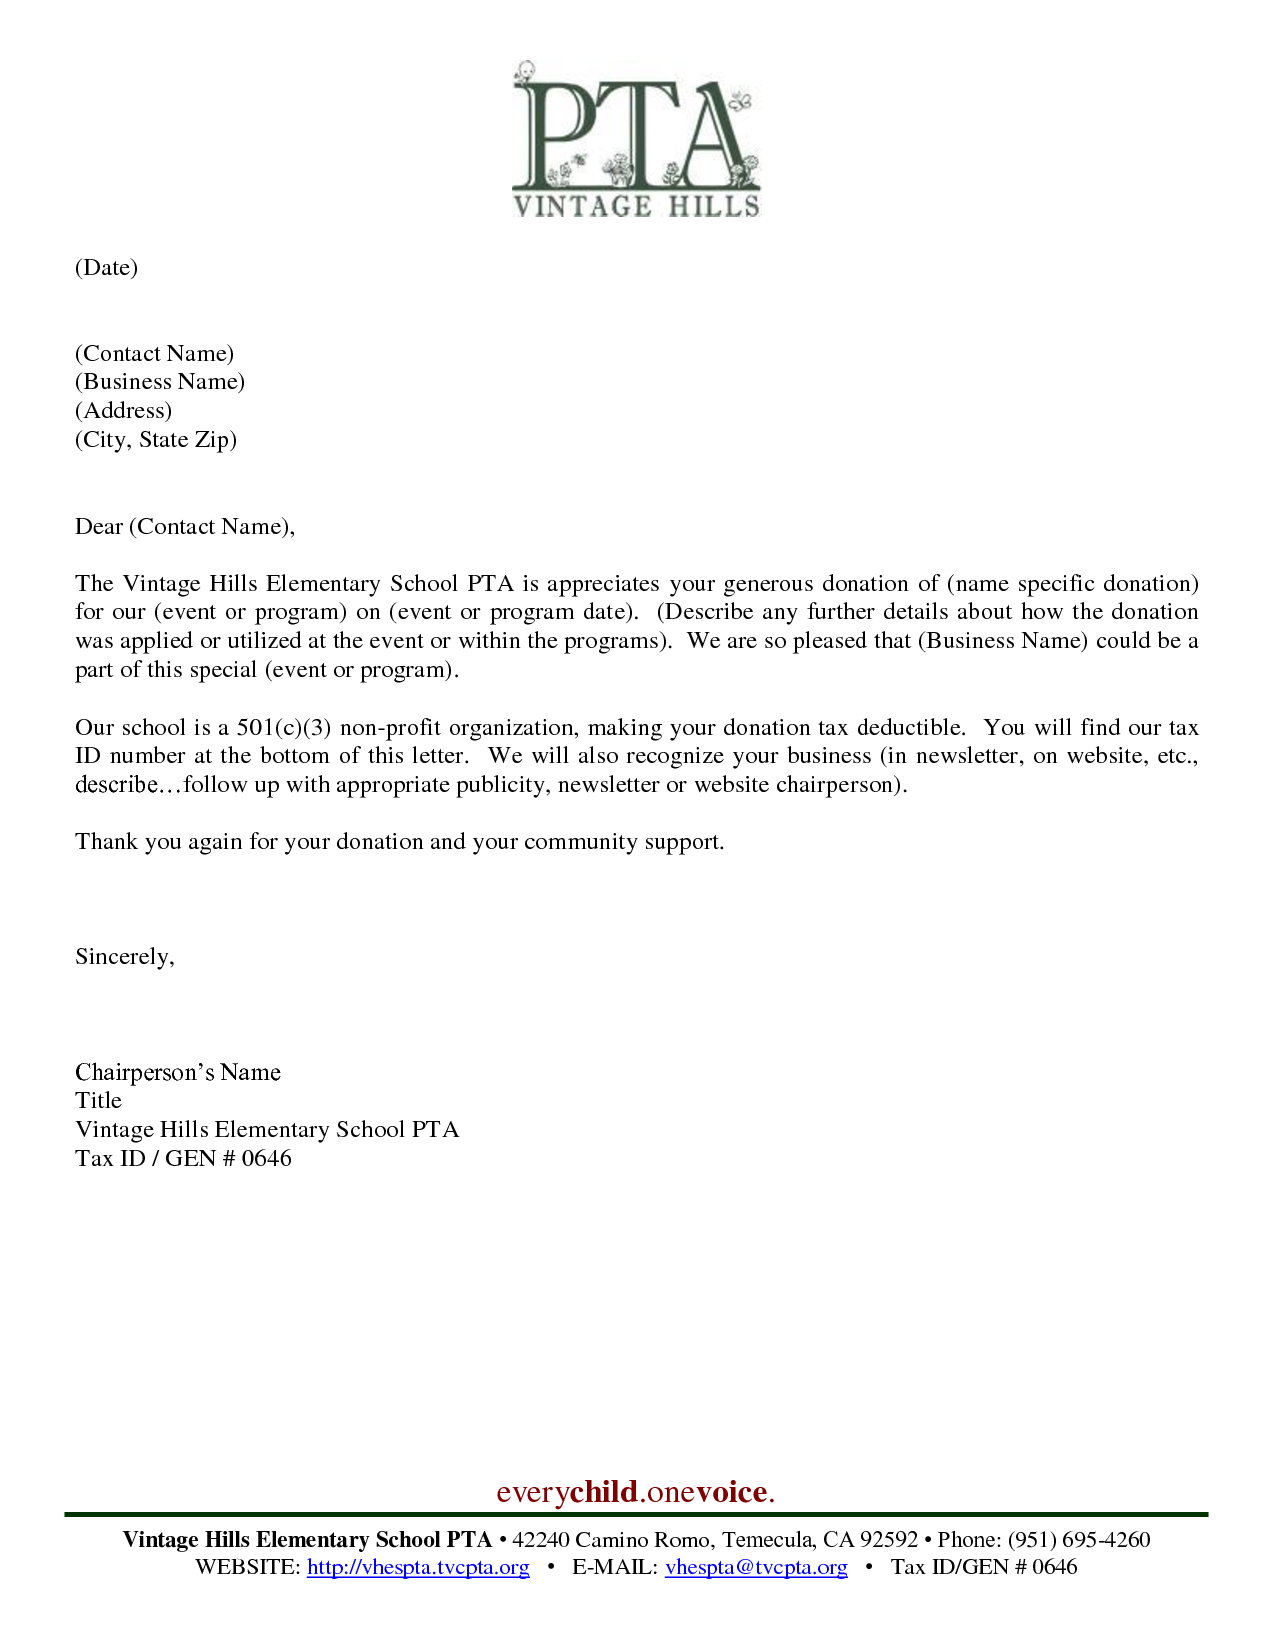 Pta Fundraising Letter Template - Donor Thank You Letter Sample